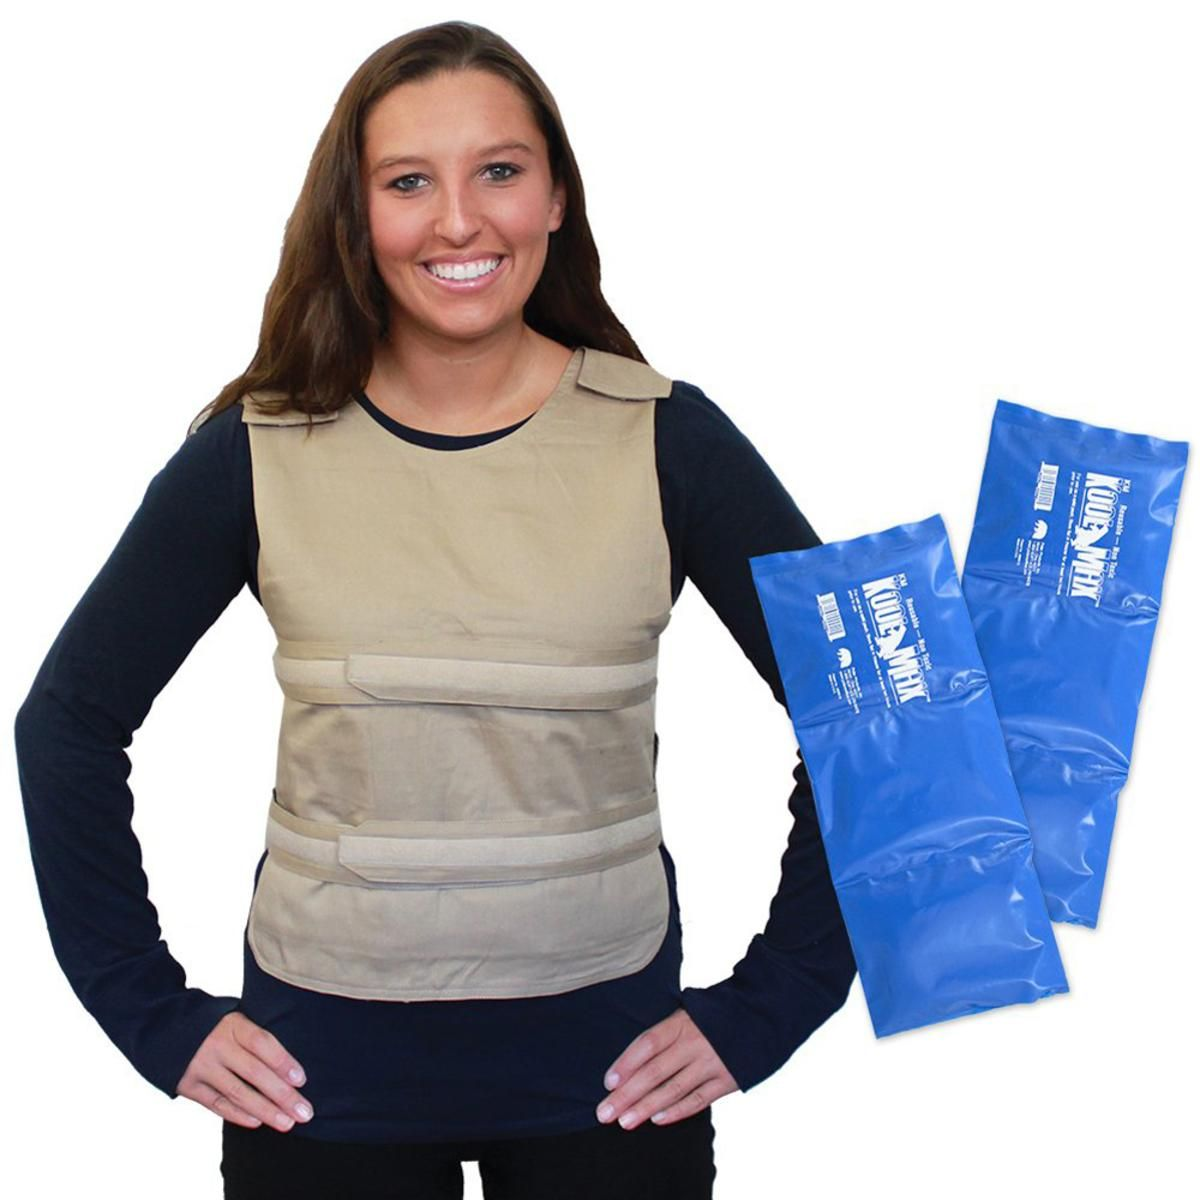 875d51717 Polar Products Kool Max Adjustable Poncho Cooling Vest - One Size Fits Most  - The Warming Store